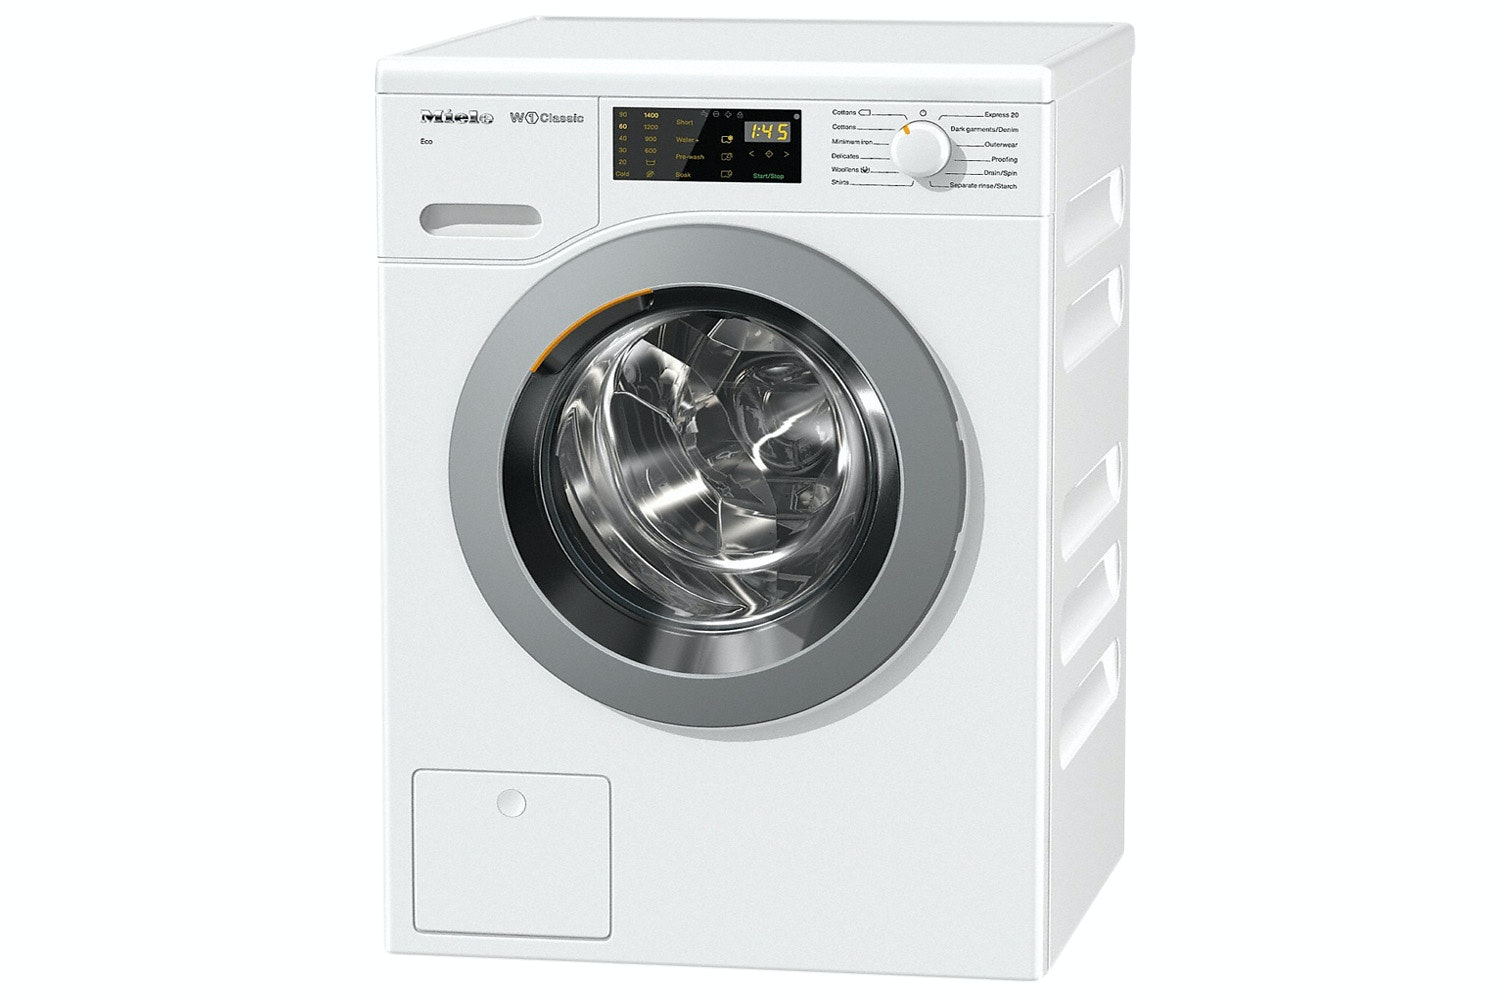 WDB020 Eco  W1 Classic front-loading washing machine   for 1-7 kg of laundry with reliable Miele quality at an attractive price